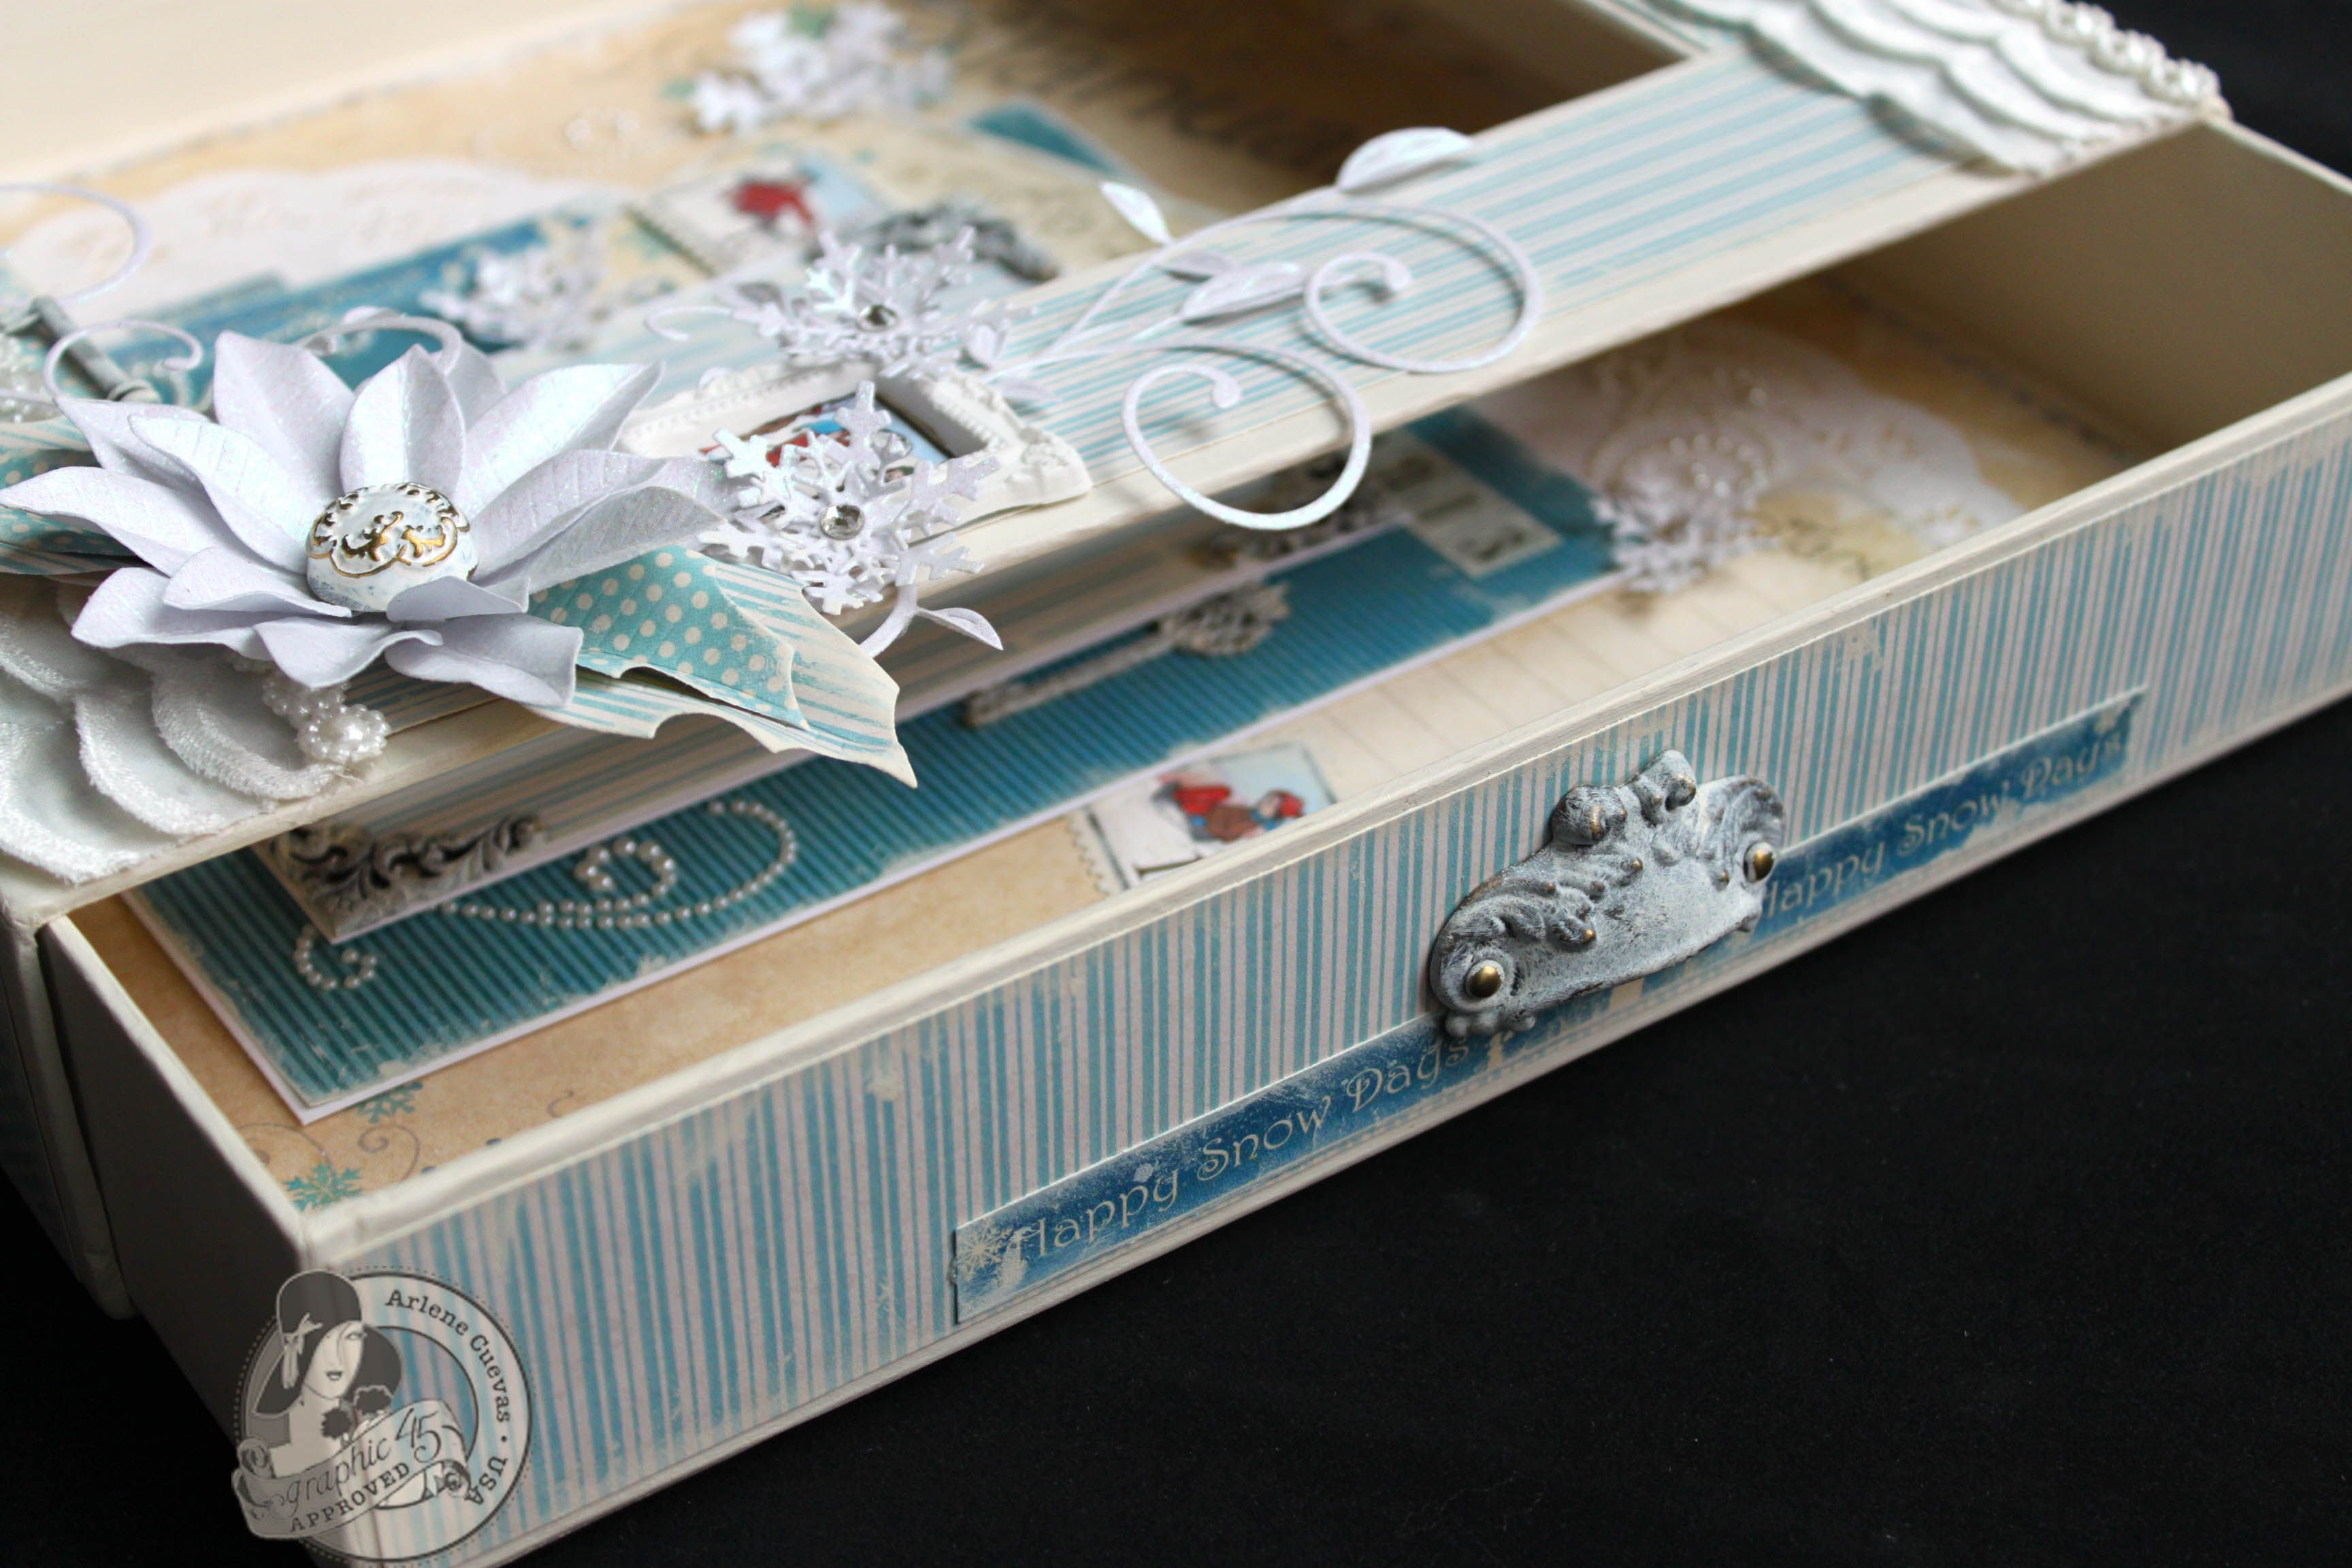 altered boxes scrapbooking for kids gifts | Place In Time Altered Matchbook Box/Scrapbook Page - Graphic 45